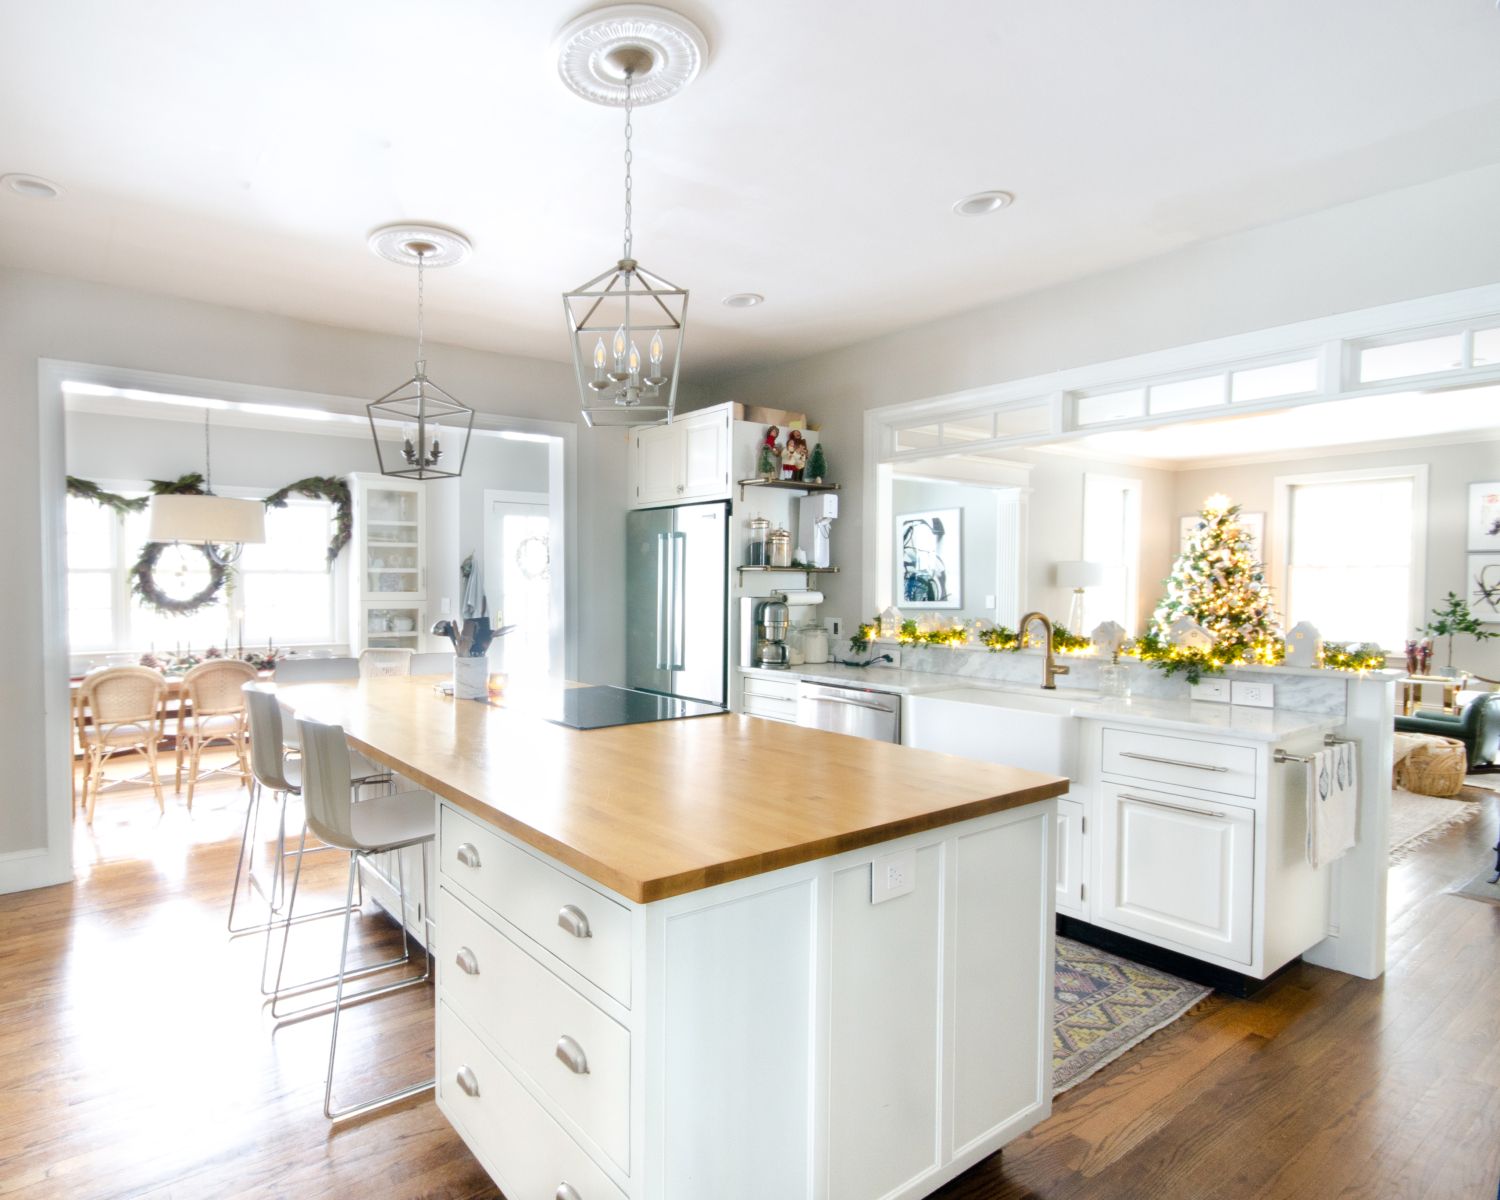 Christmas kitchen with white cabinets and butcher block counter on the island.